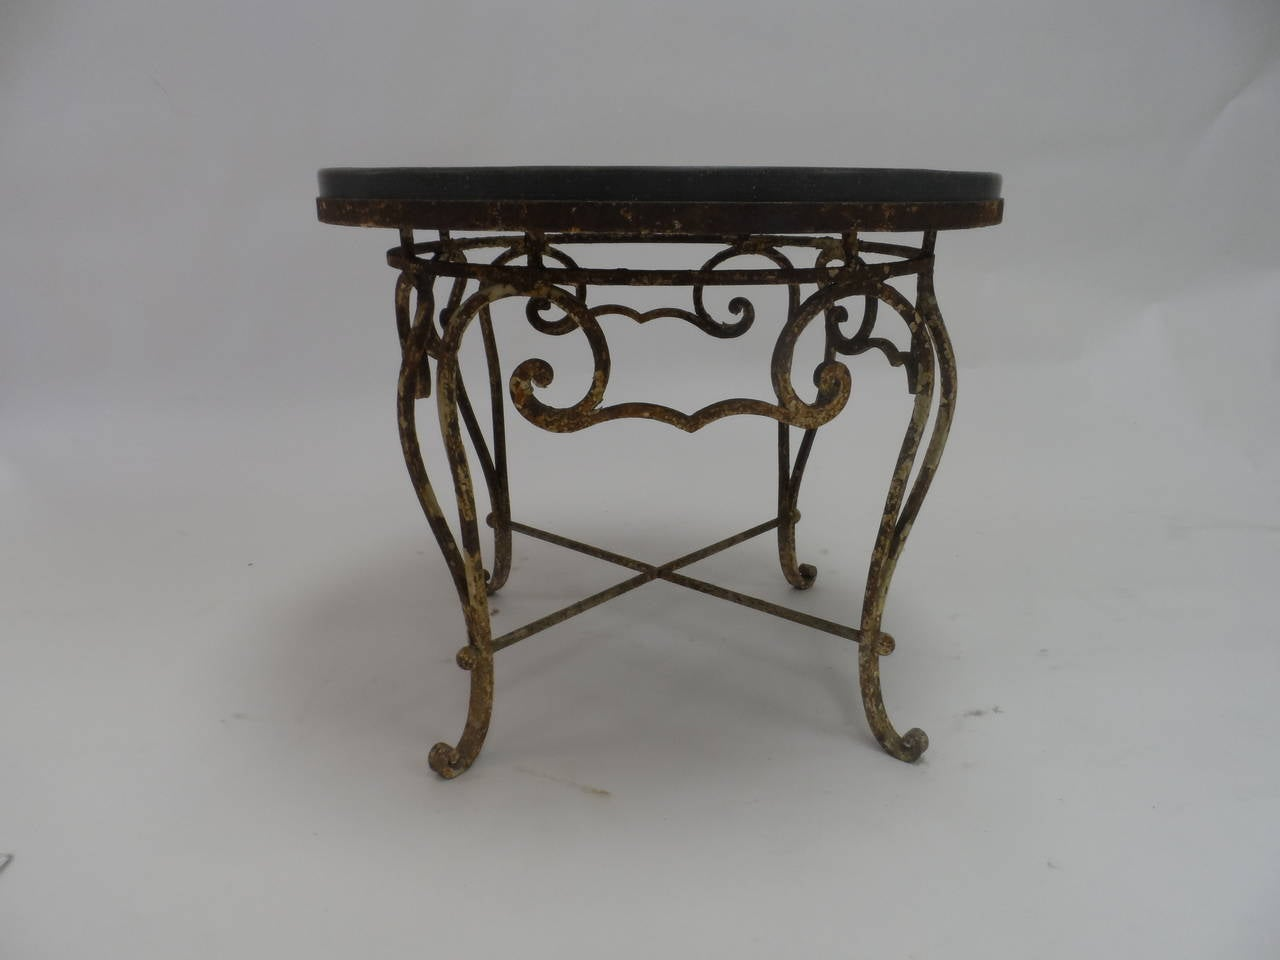 Vintage Iron And Stone Round Coffee Table At 1stdibs